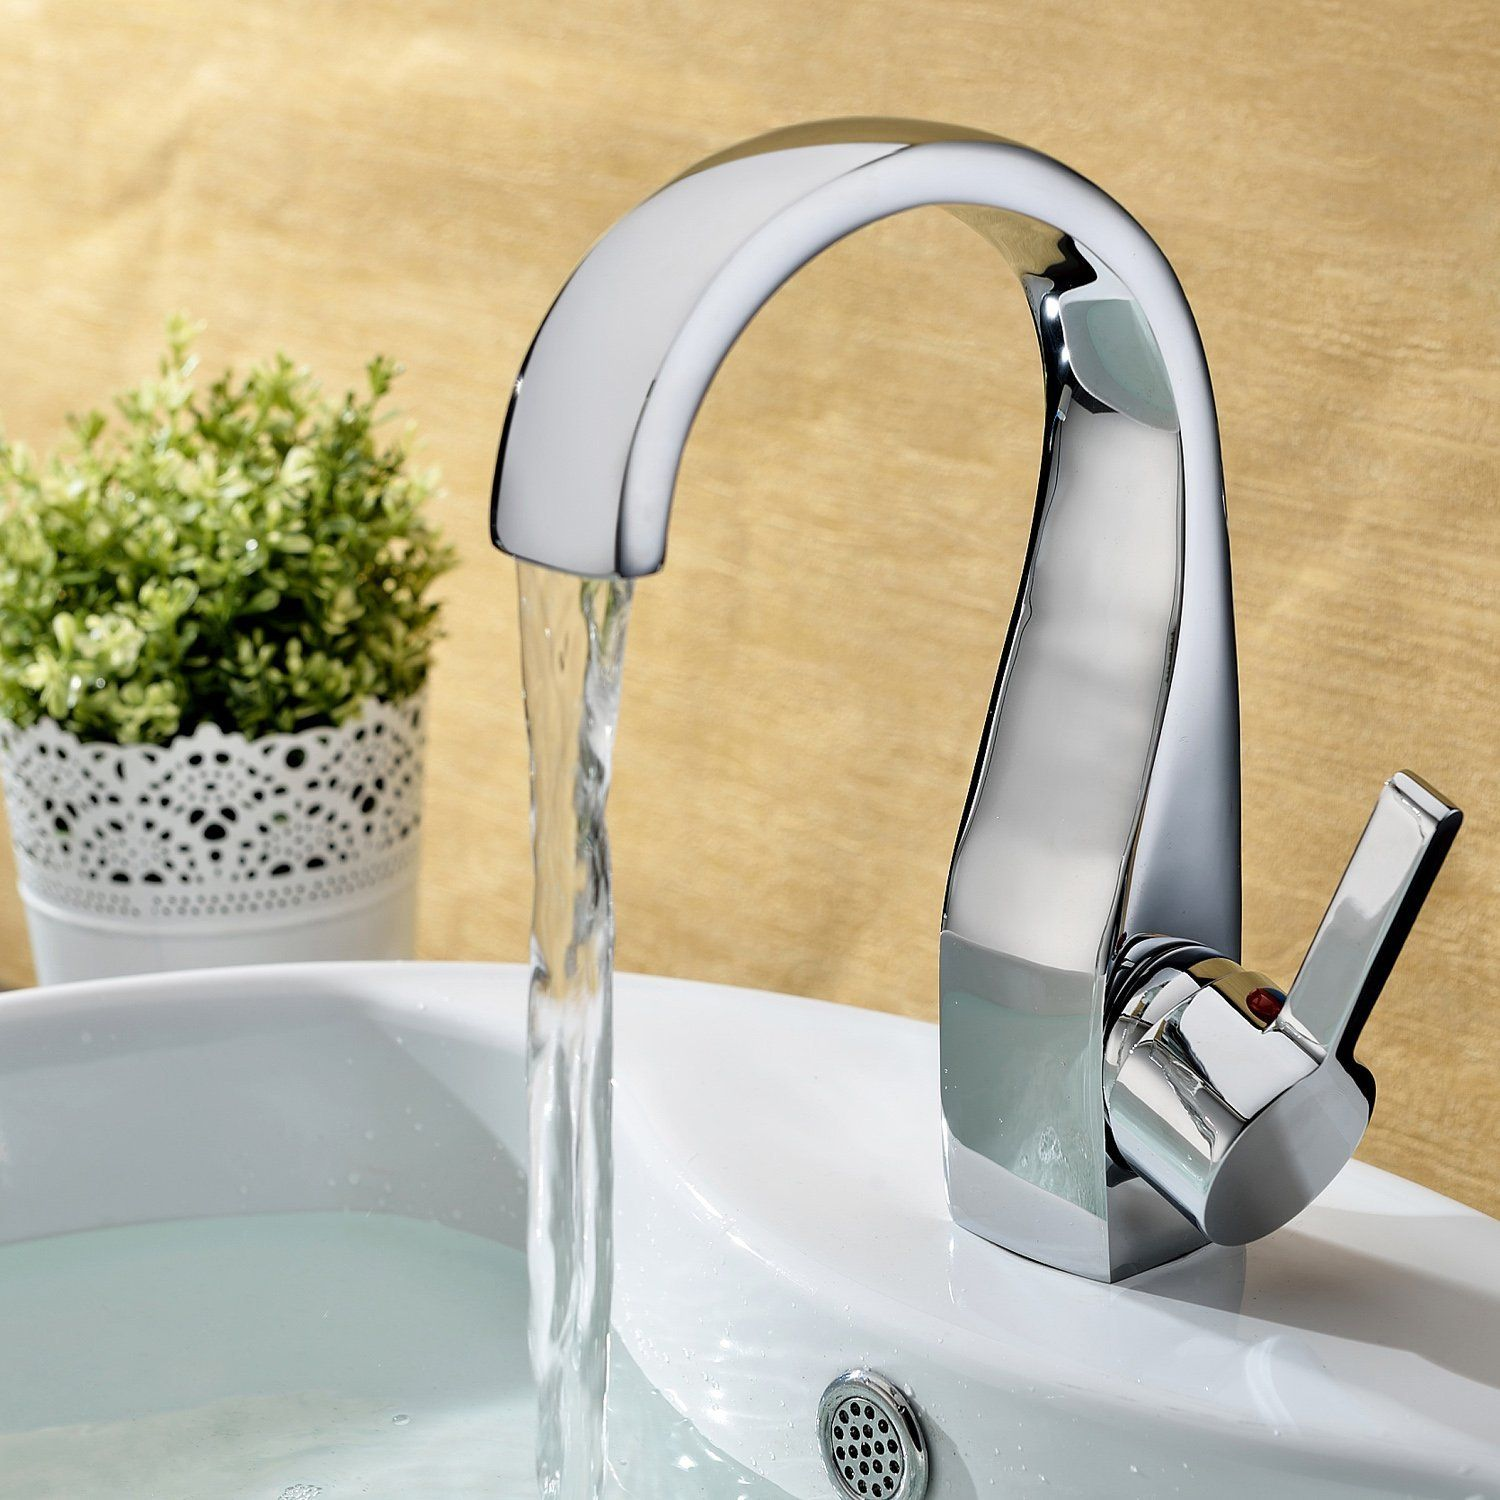 99 Lightinthebox Elegant Brass Bathroom Sink Faucet Chrome